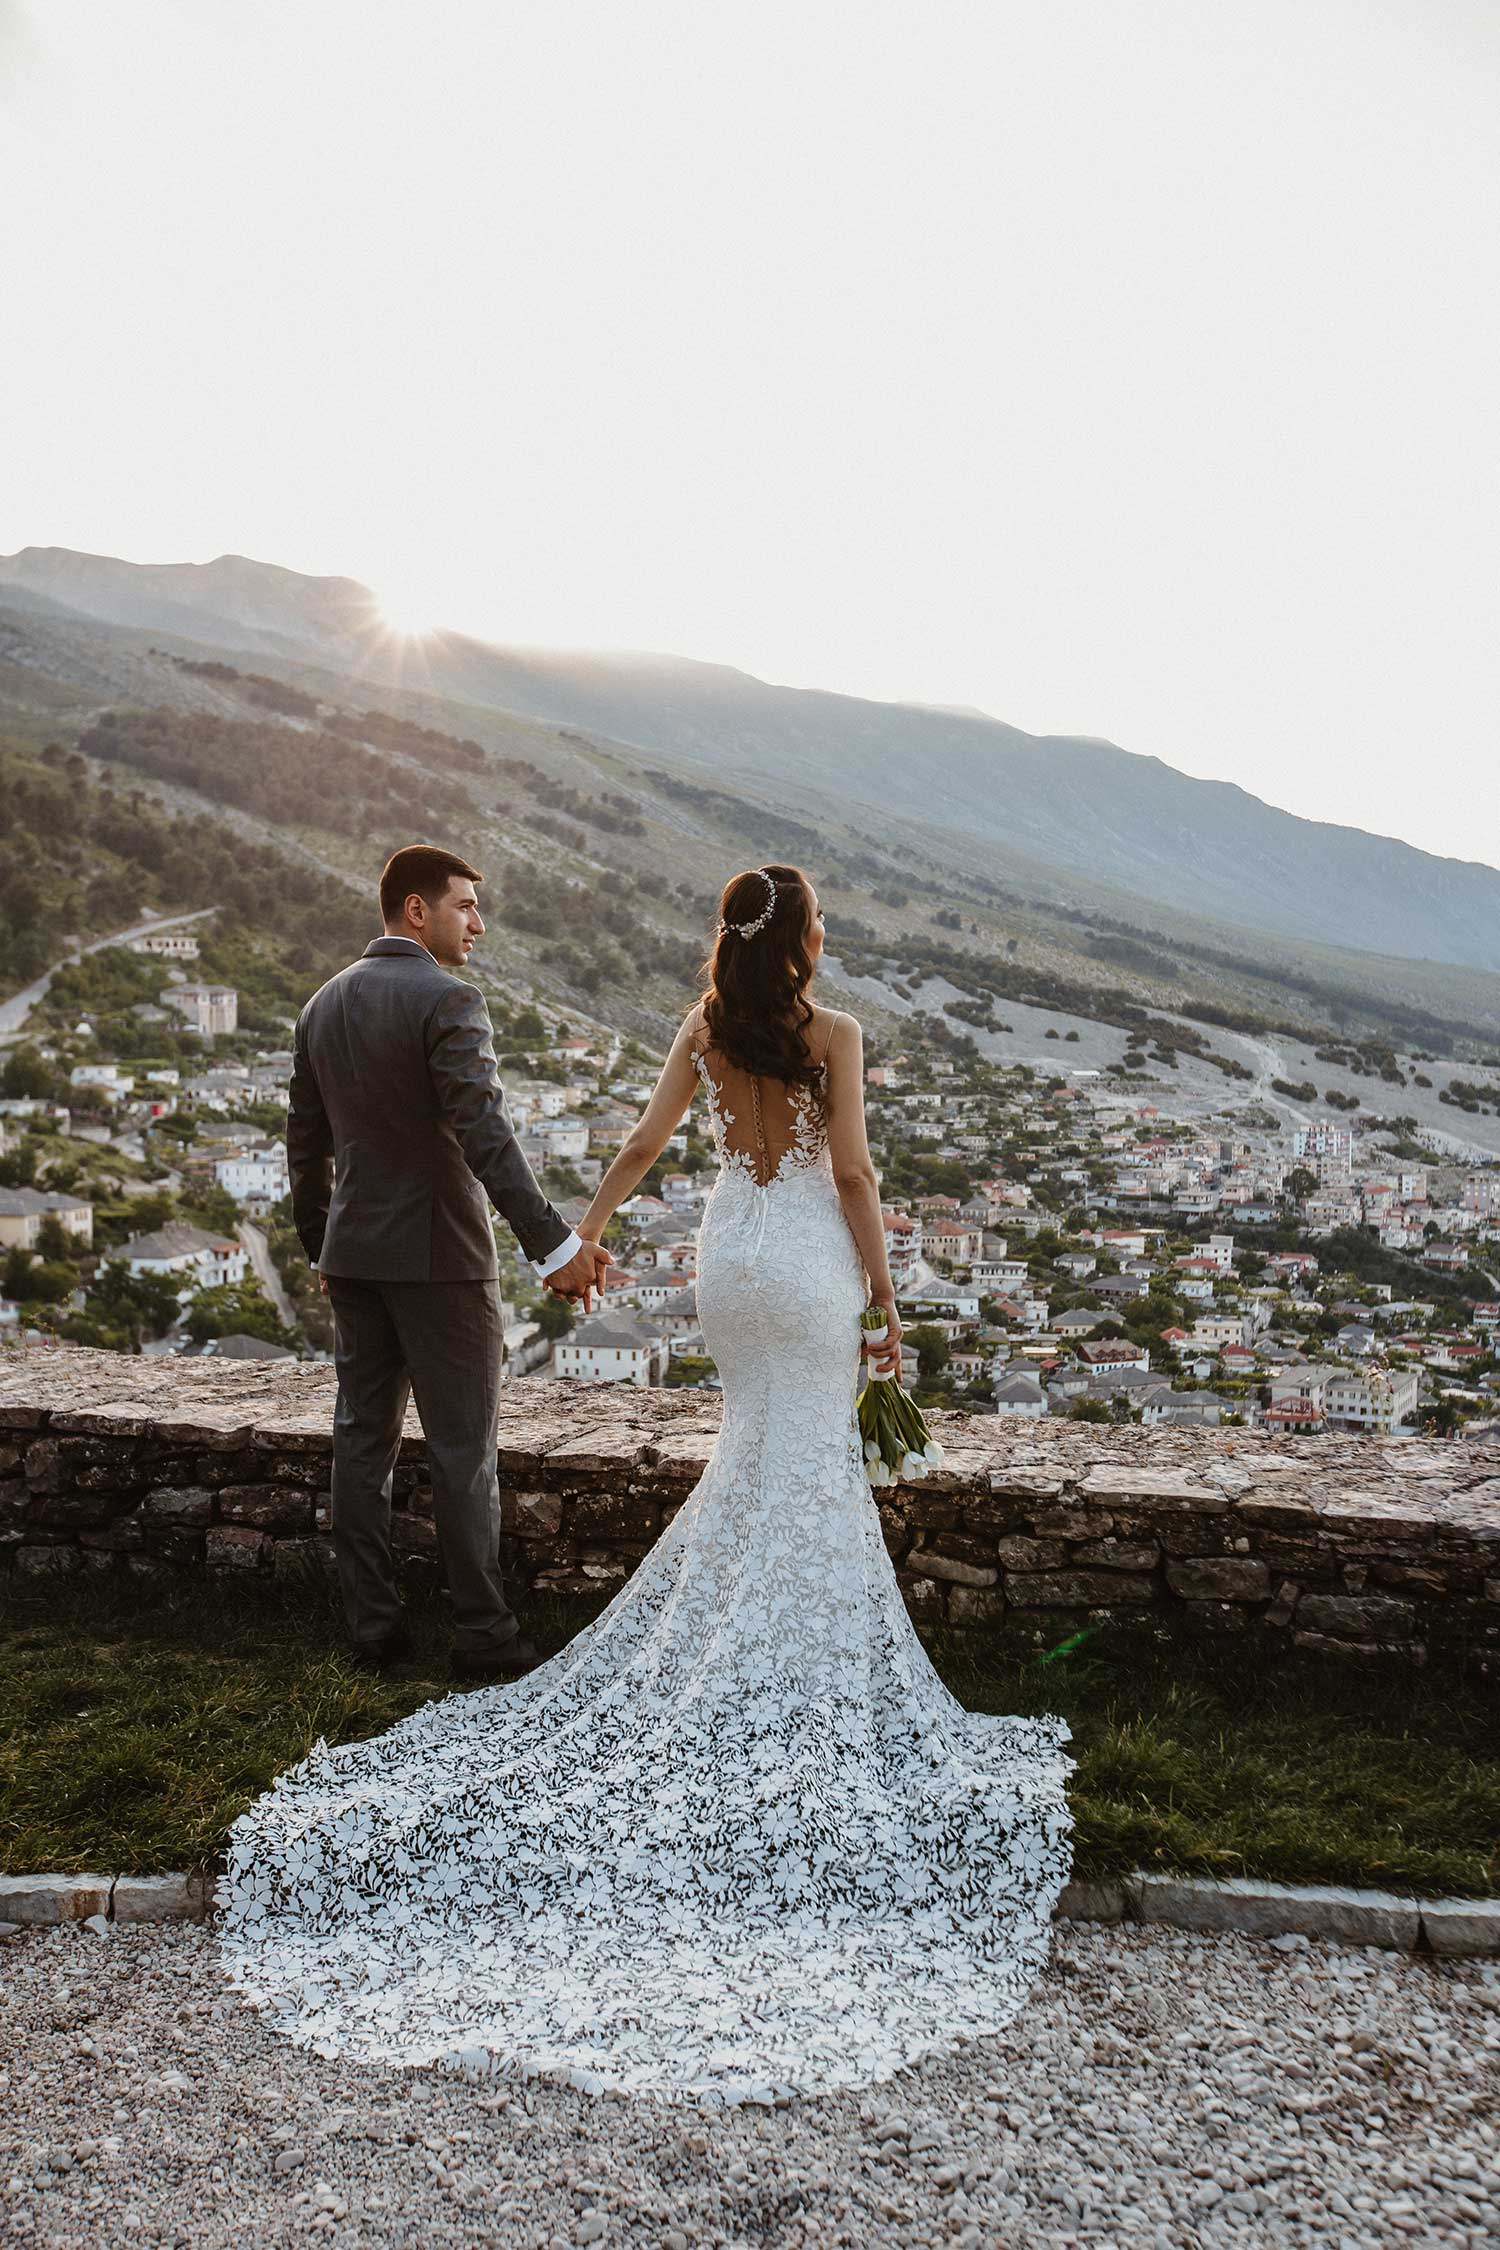 The amazing-view of this wedding photoshoot